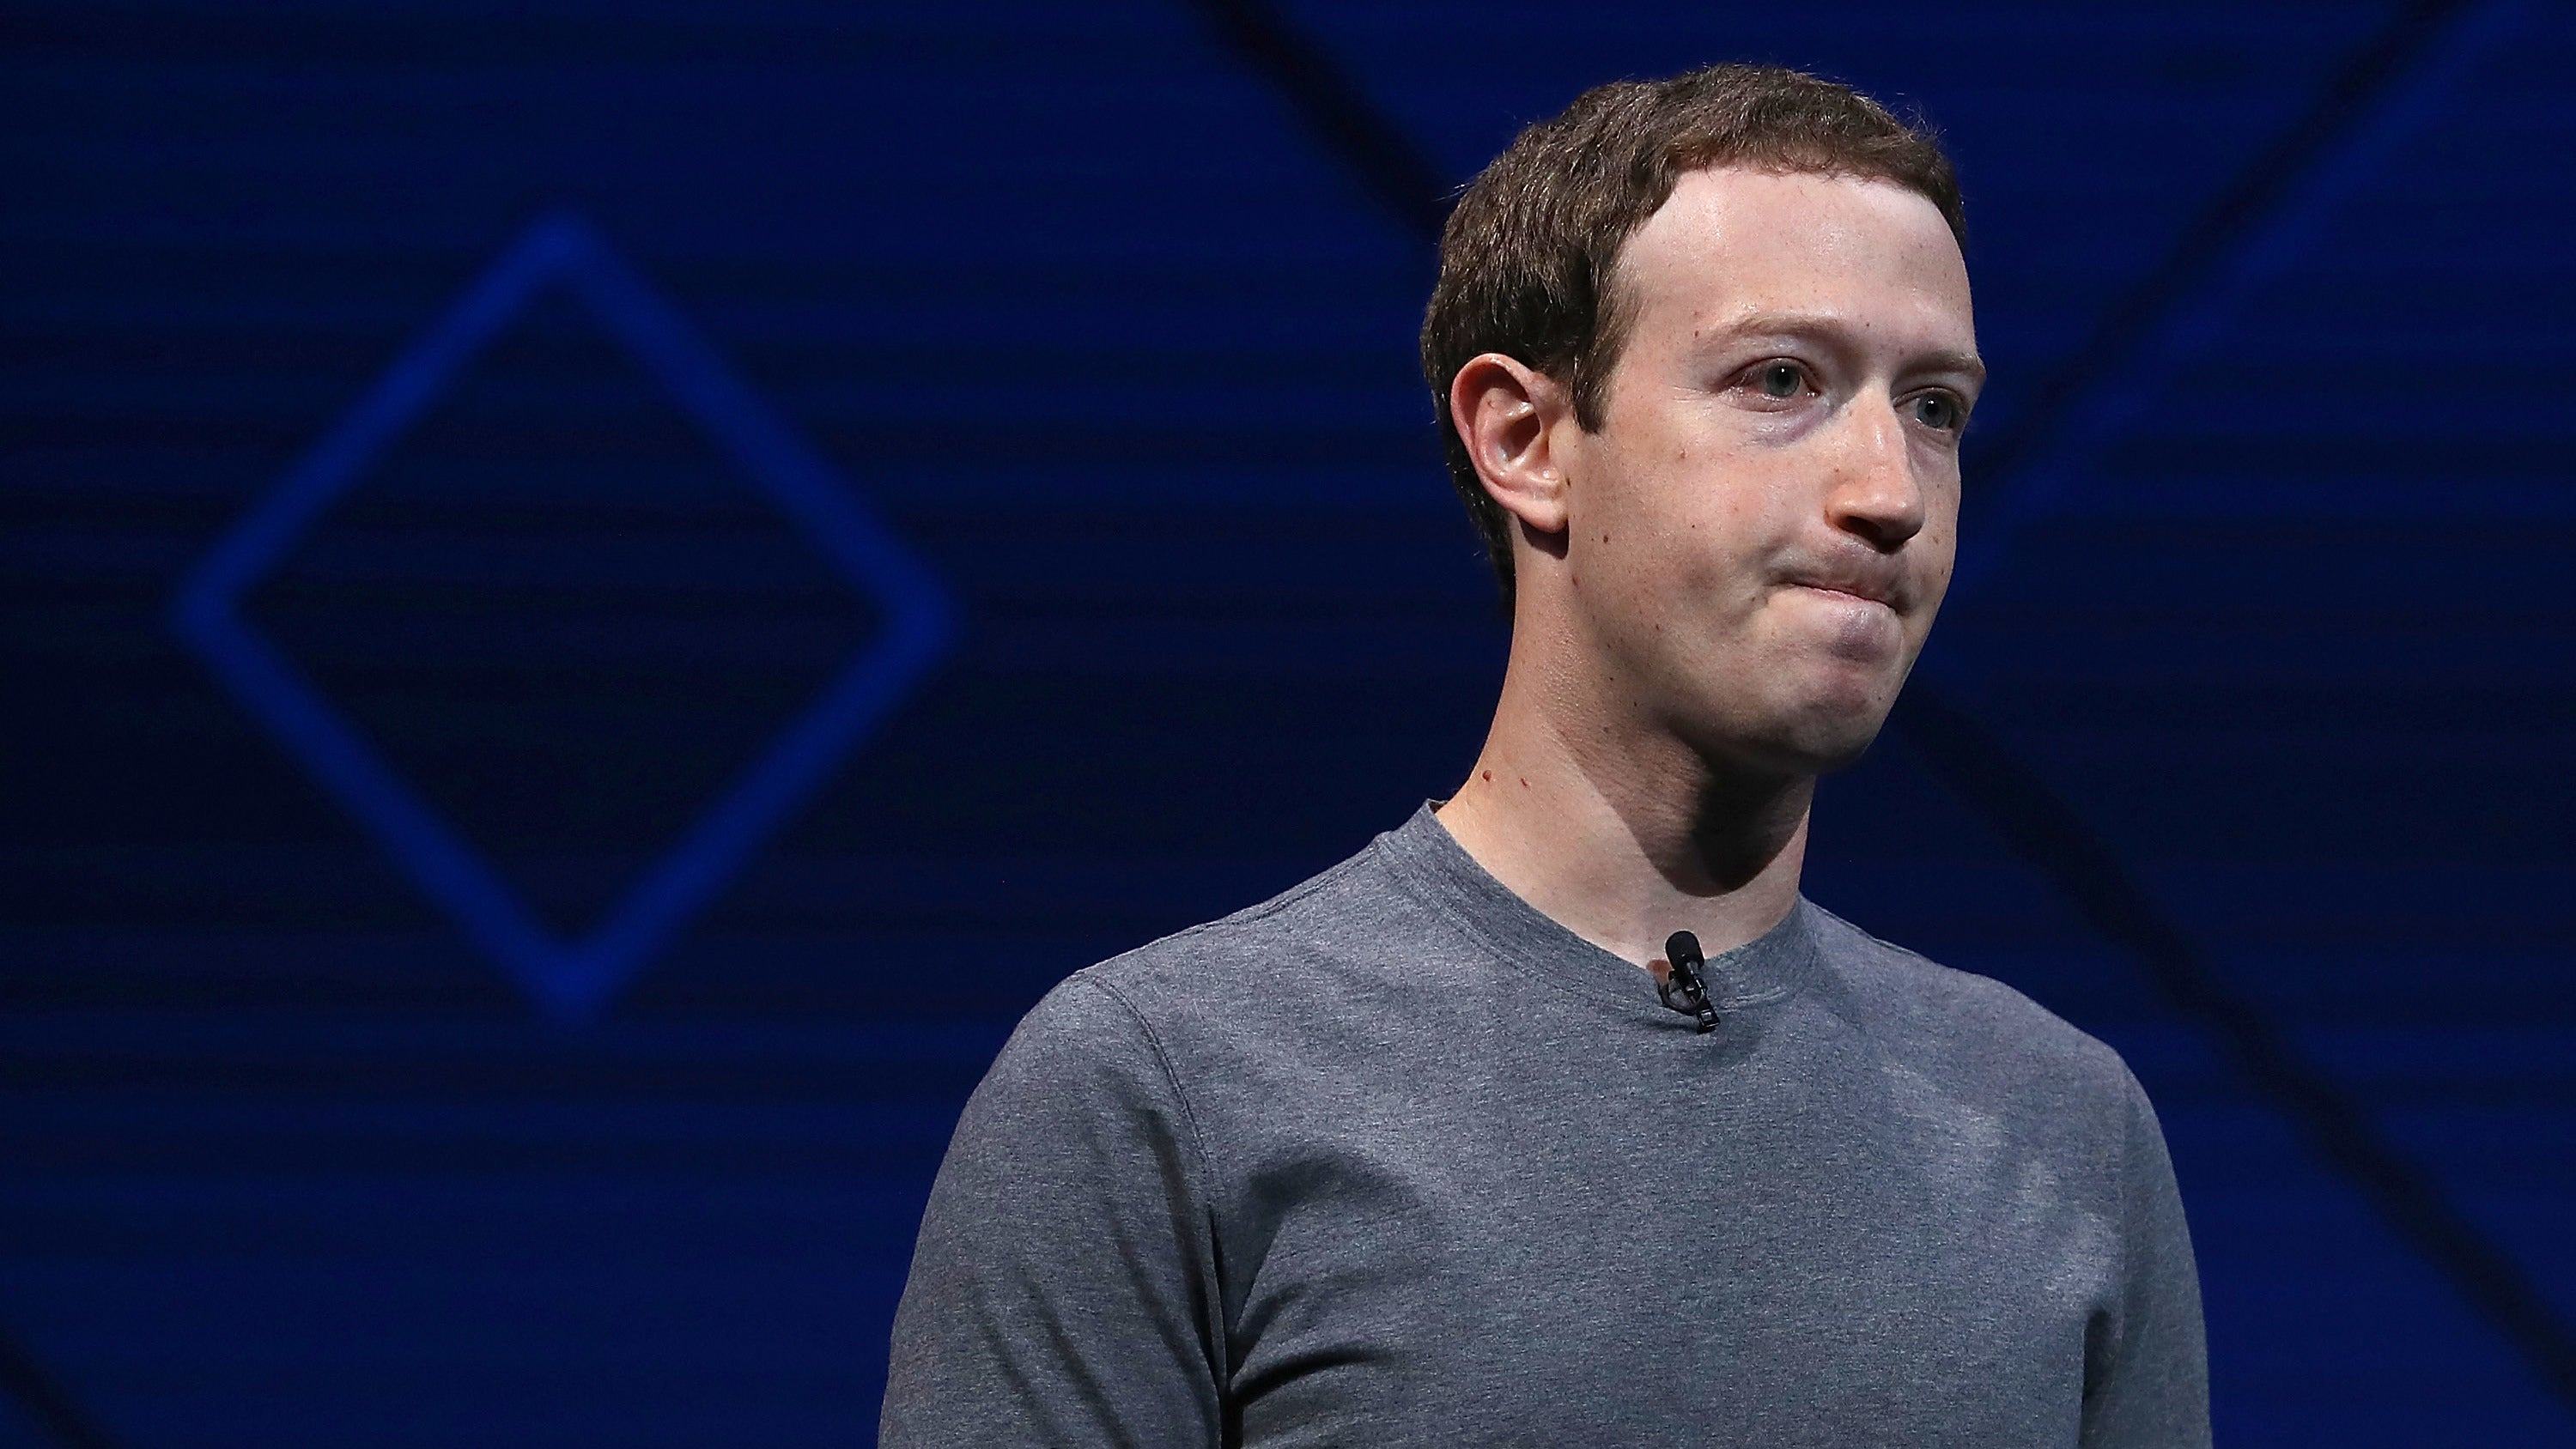 Mark Zuckerberg Emails His Myanmar Critics Directly, They Publicly Blast Back